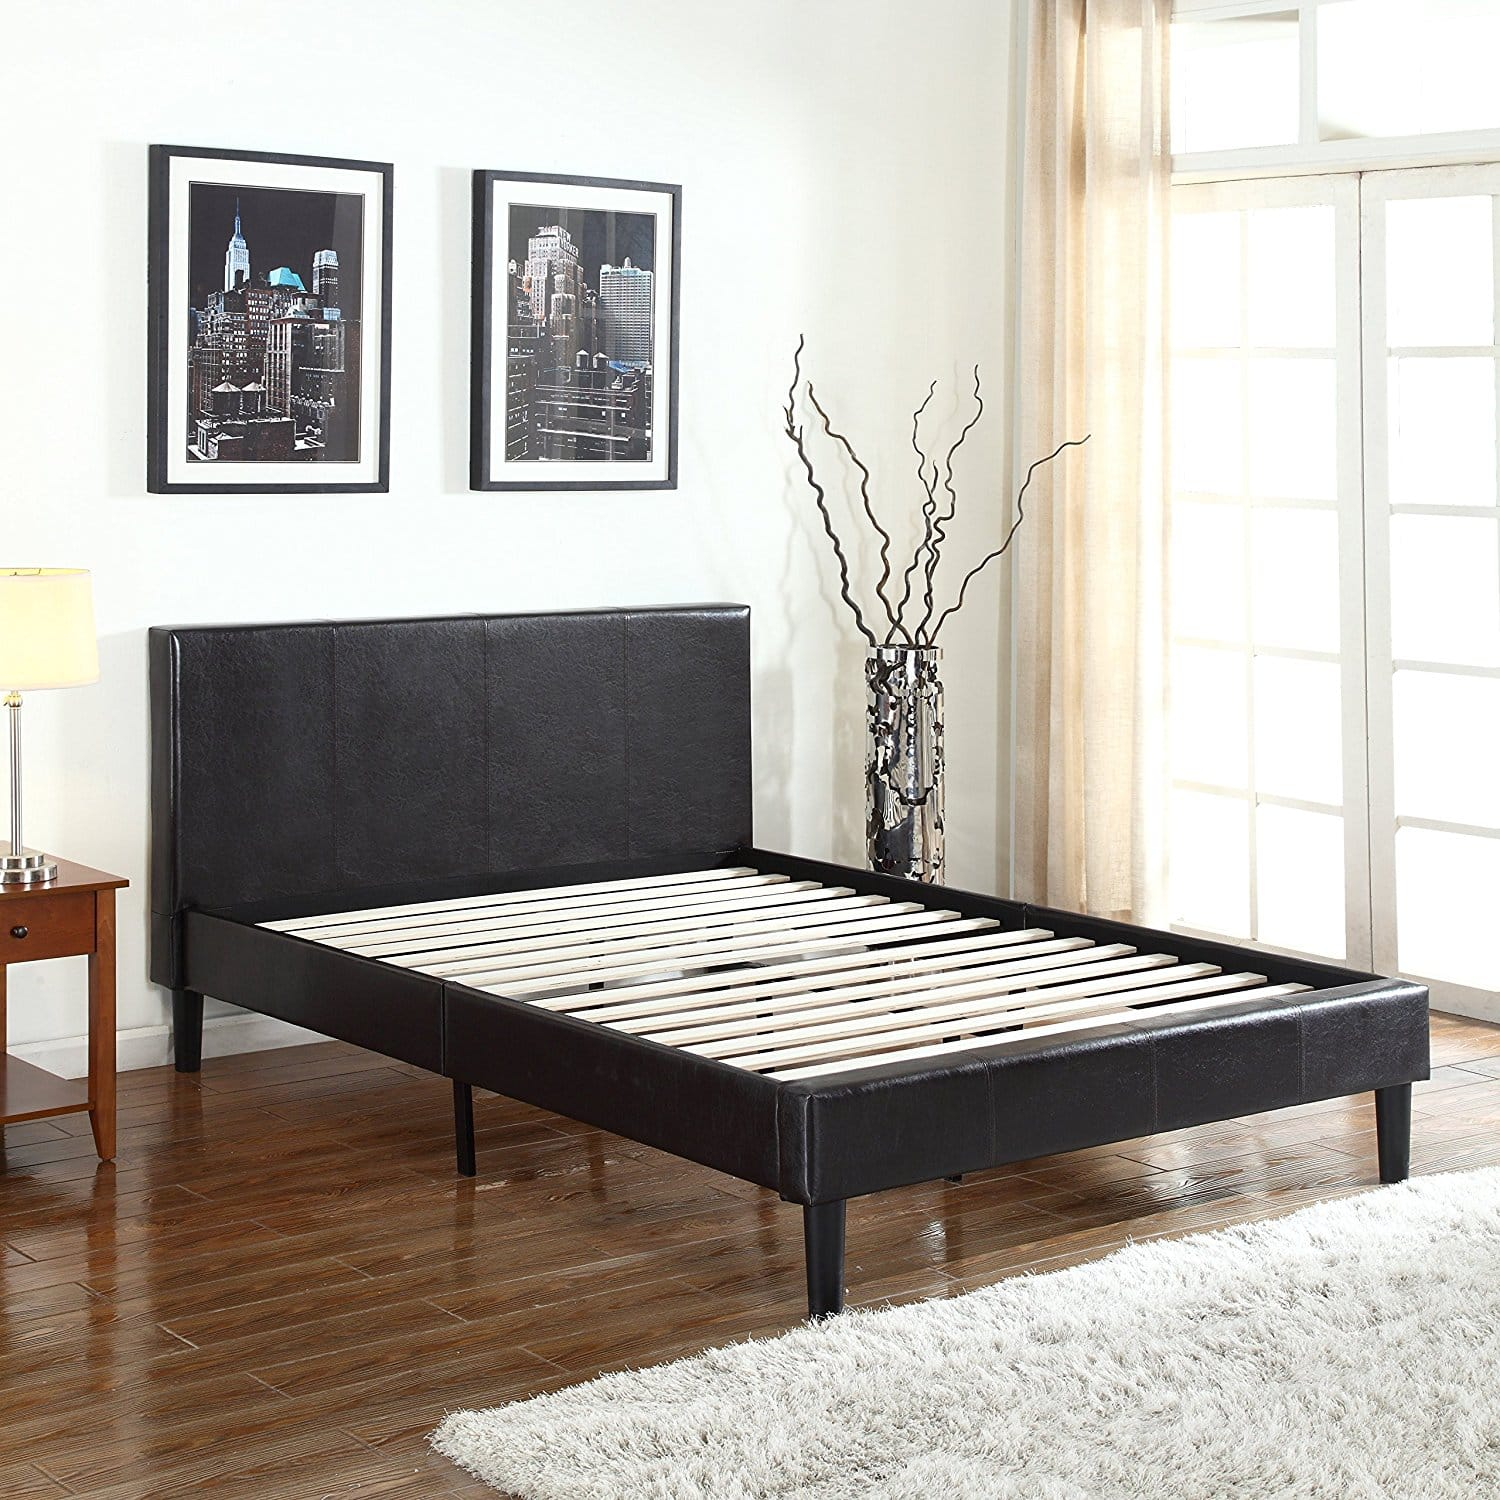 Fancy Divano Roma Furniture Deluxe Bonded Leather Platform Bed with Wooden Slats Queen Free Shipping Tax Slickdeals net